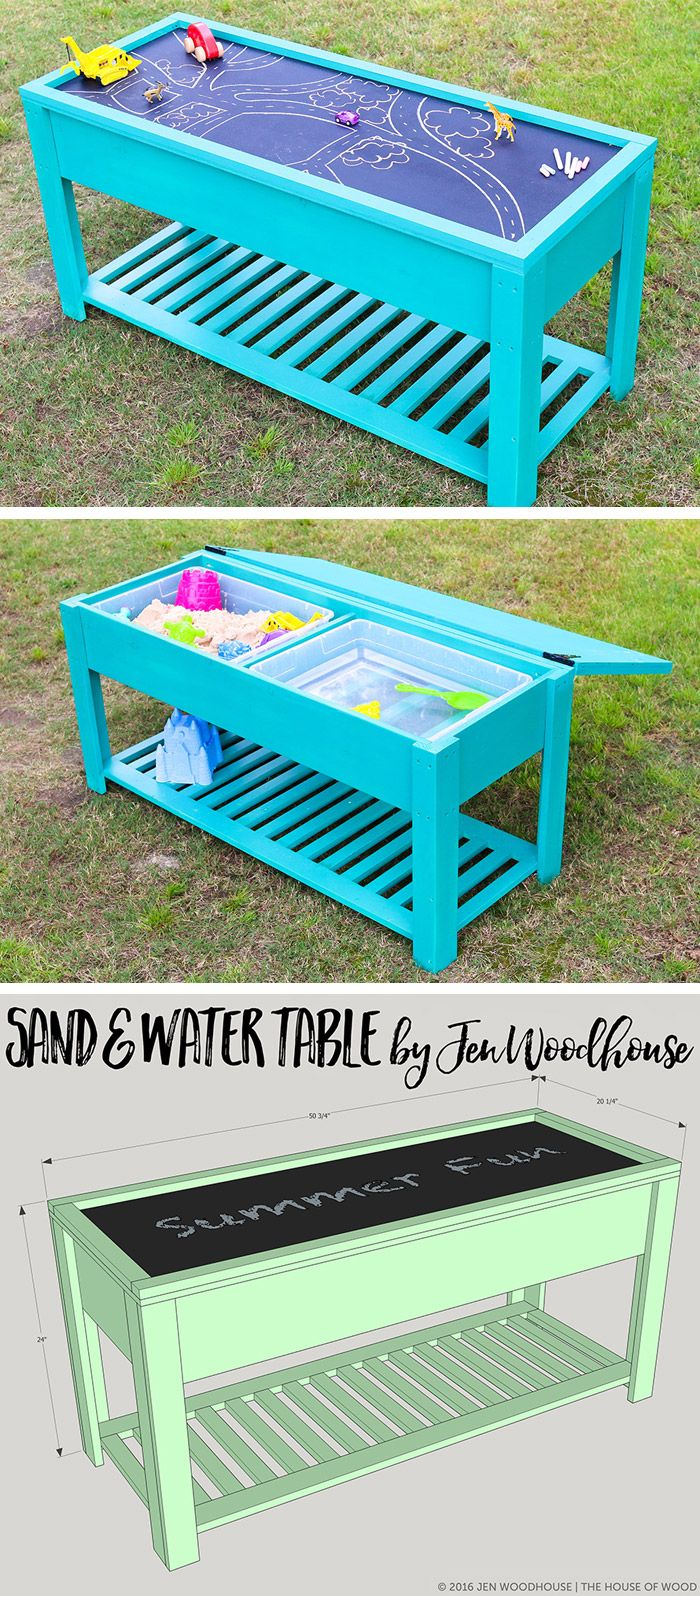 Learn how to build a fun DIY sand and water table for your kids! Free plans by Jen